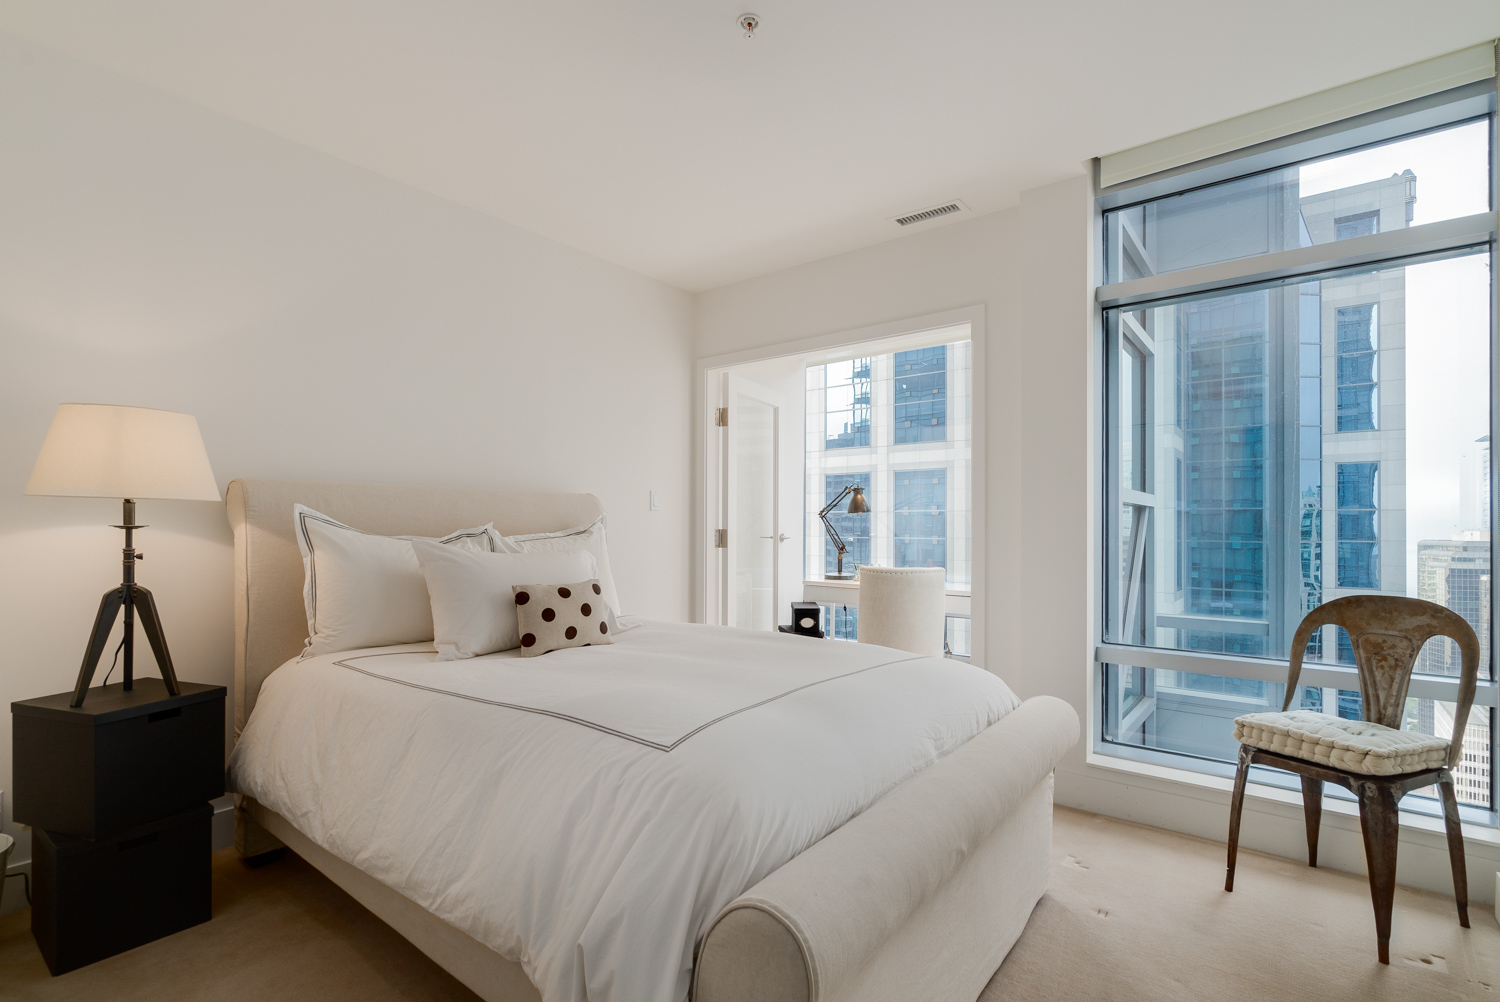 New Beautiful Modern 2 Bedroom Condo For Sale At Shagnri